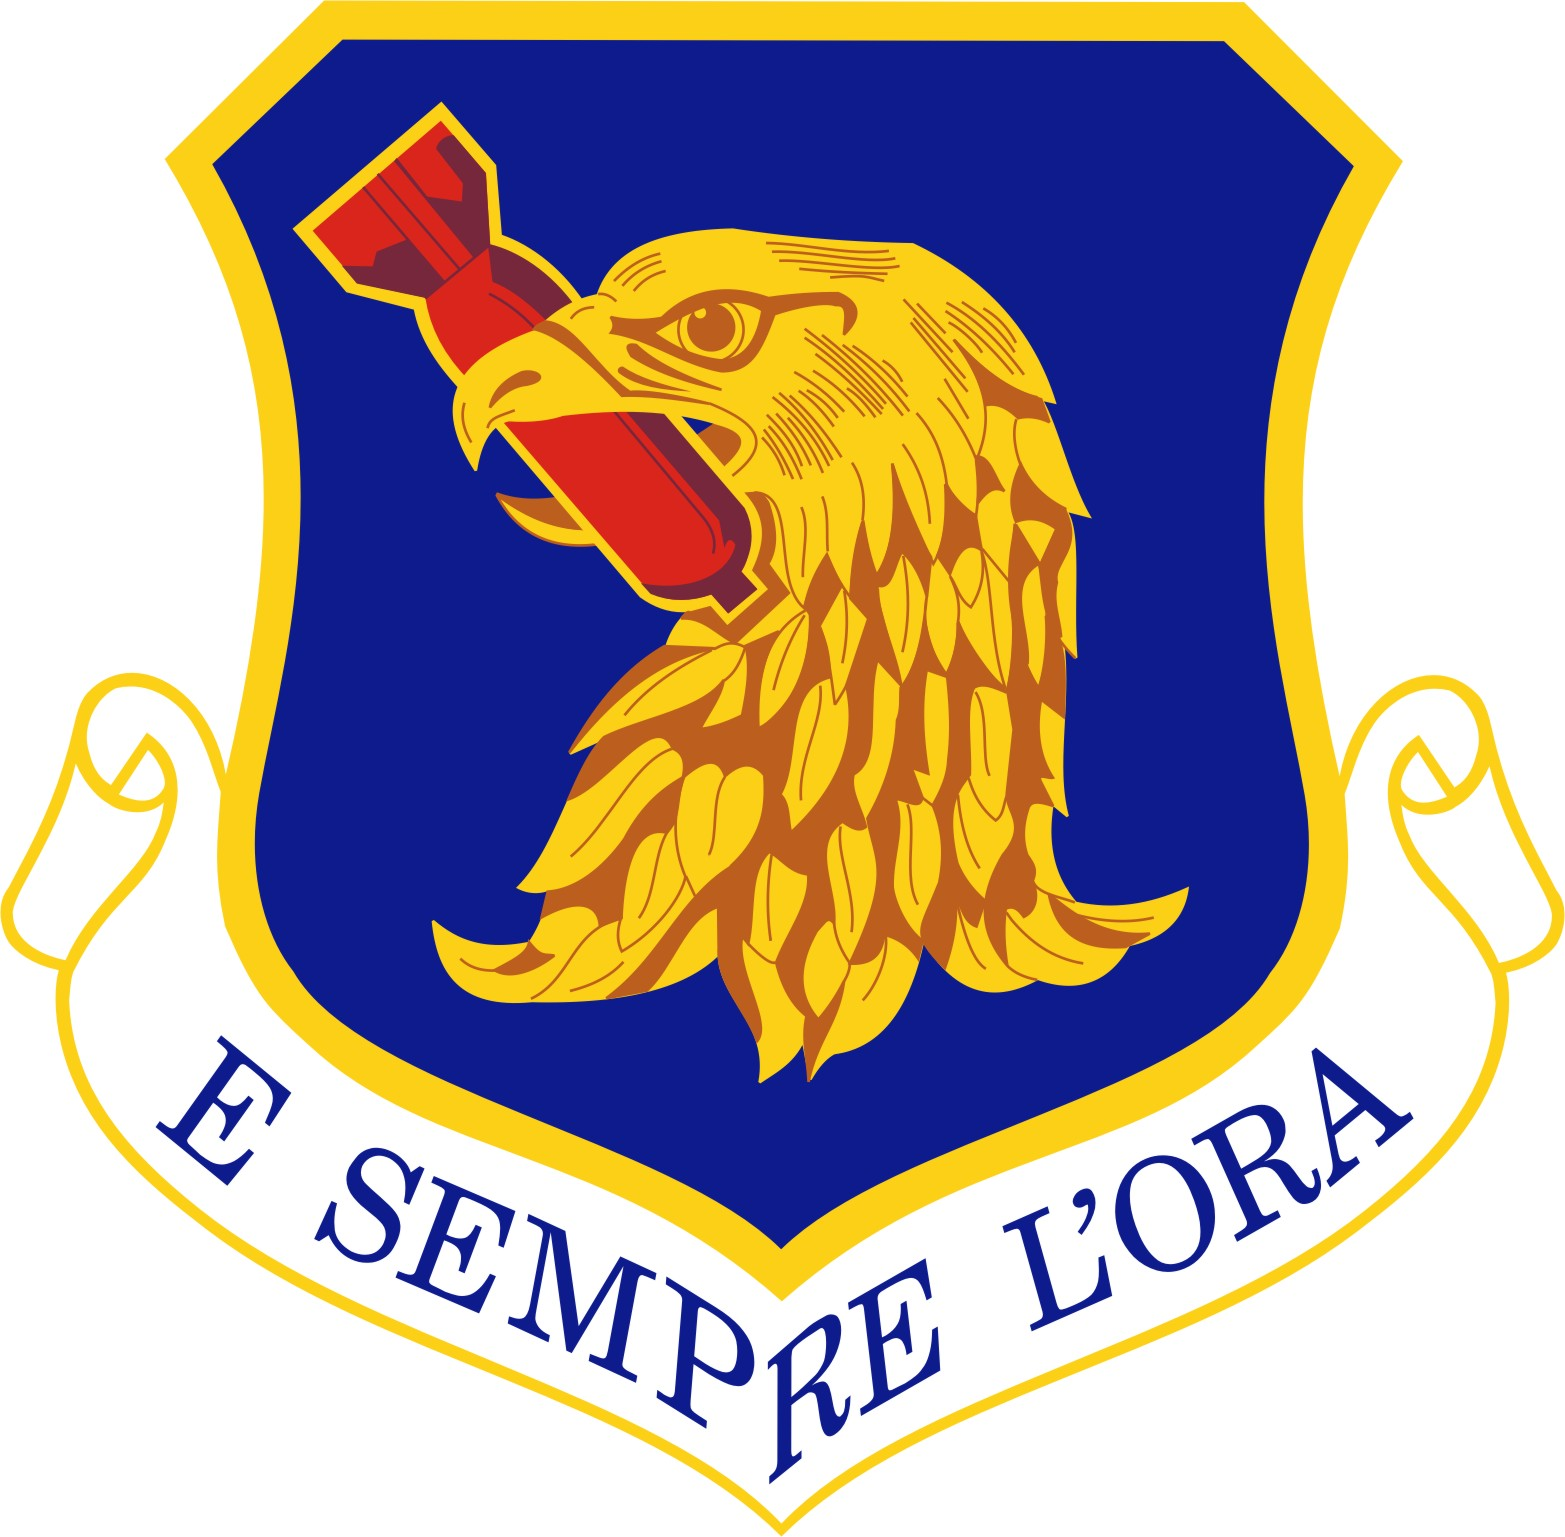 96th